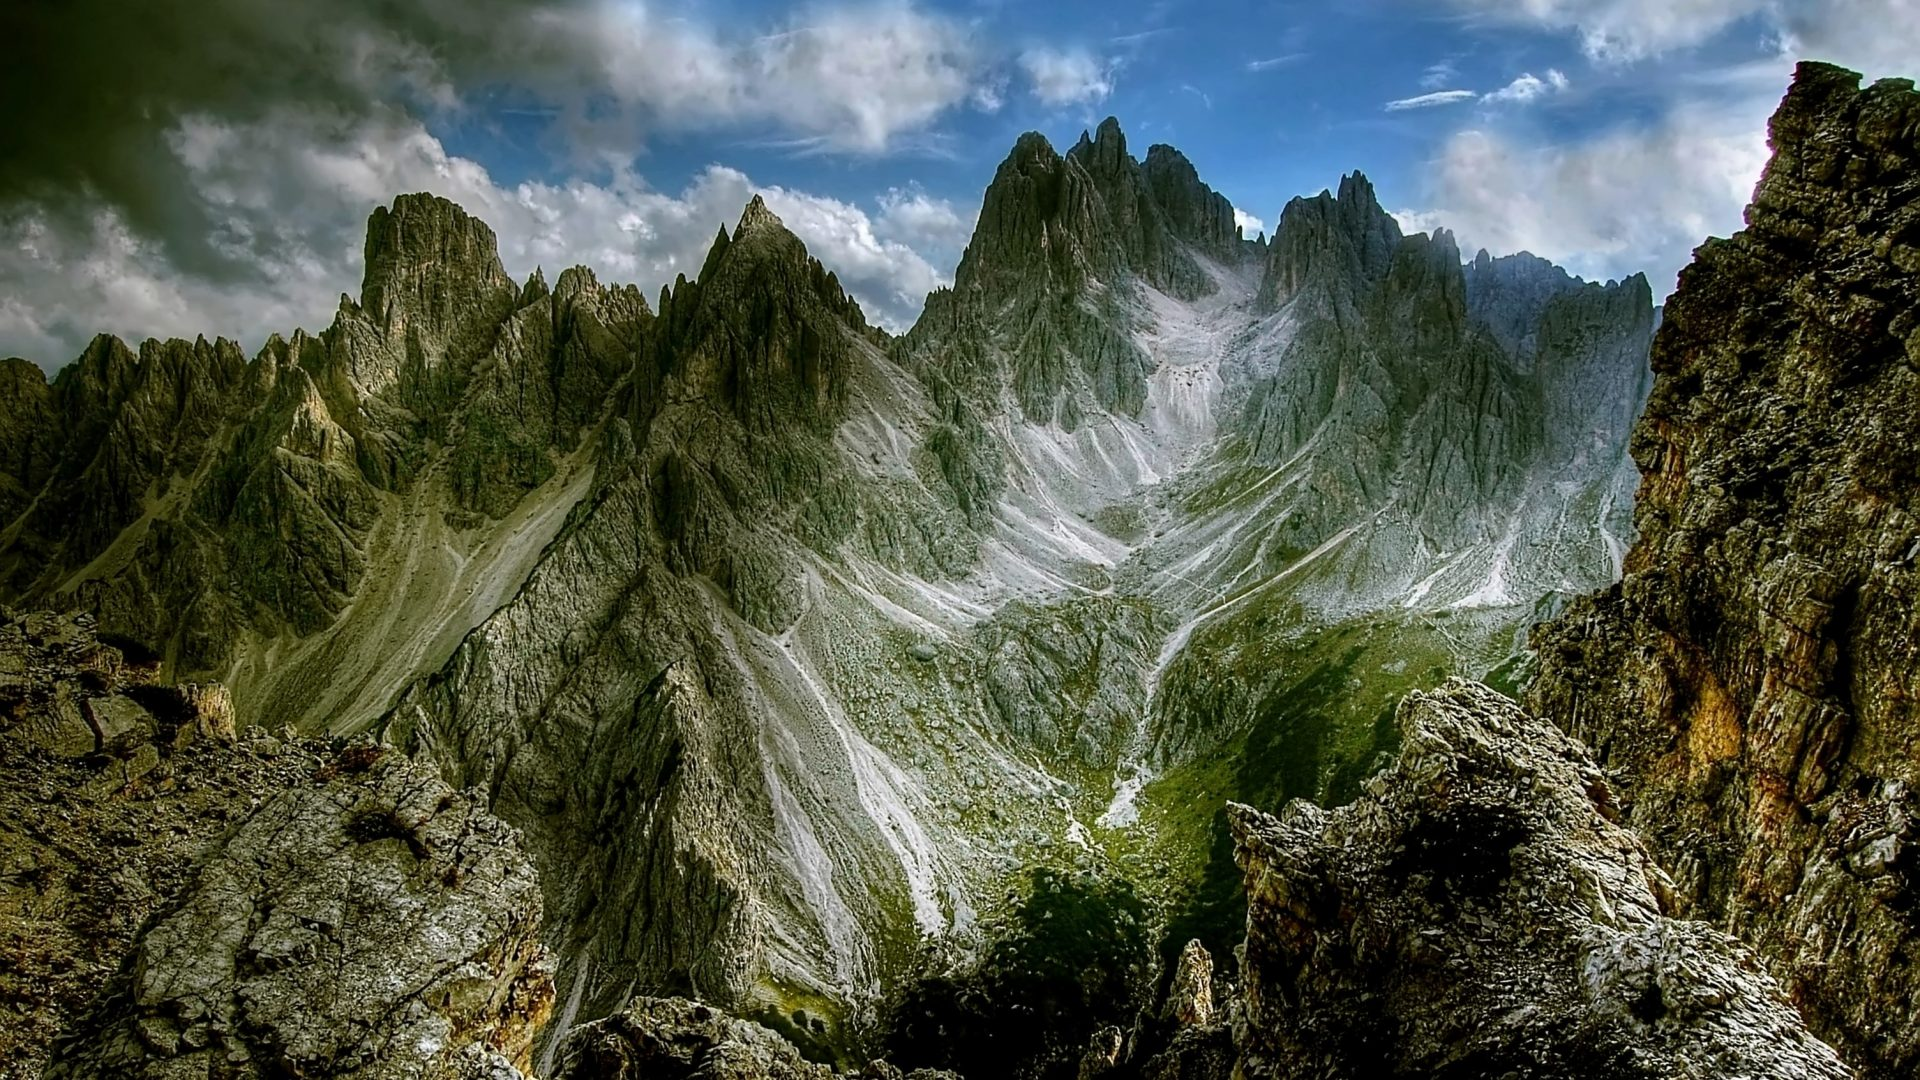 Army 3d Wallpaper Dolomites Mountains Cadini Di Misurina Hd Wallpaper